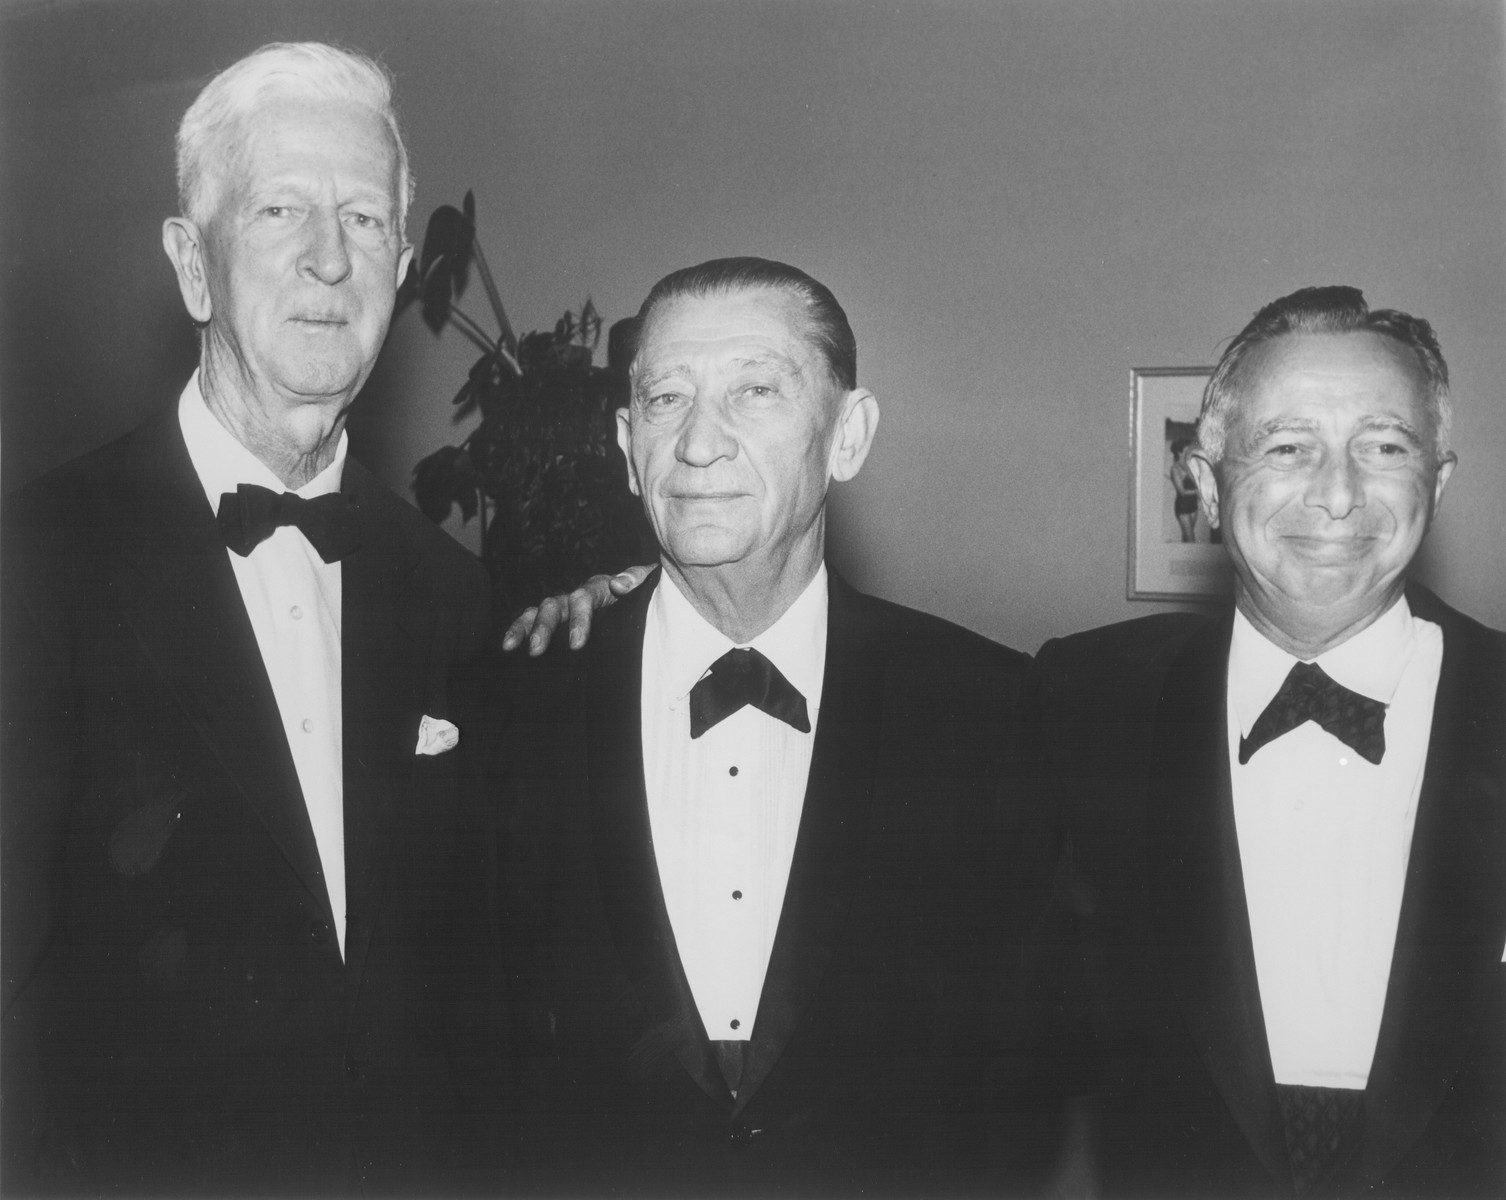 American Jewish philanthropist Abraham S. Kay (center) poses with James G. McDonald (left) and Samuel Sugar (right) at an affair in Washington, D.C.